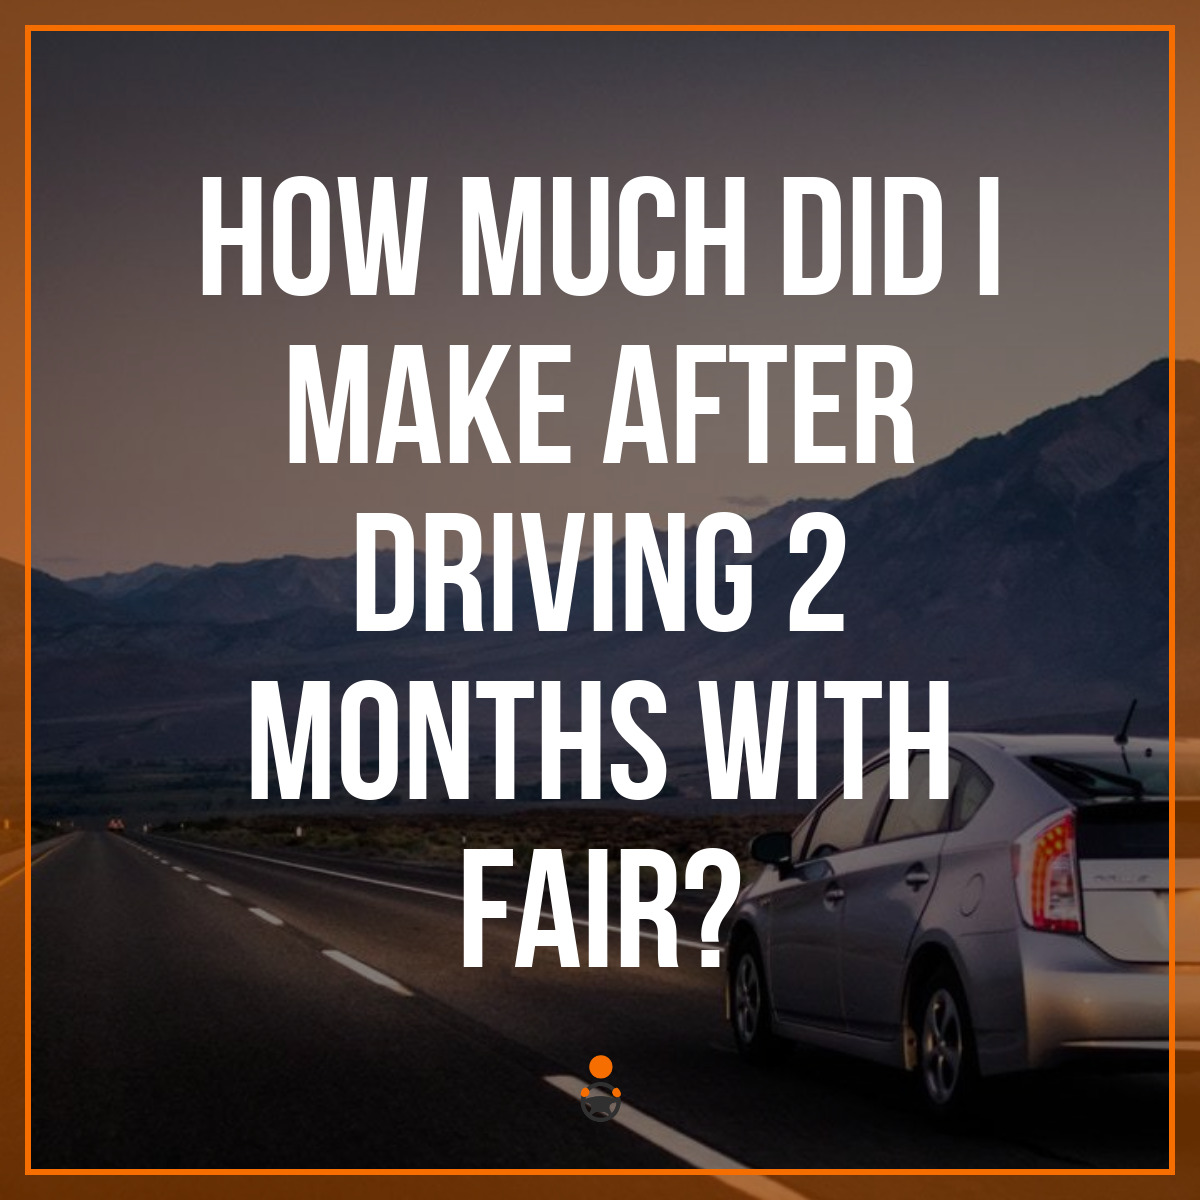 How Much Did I Make After Driving 2 Months with Fair?